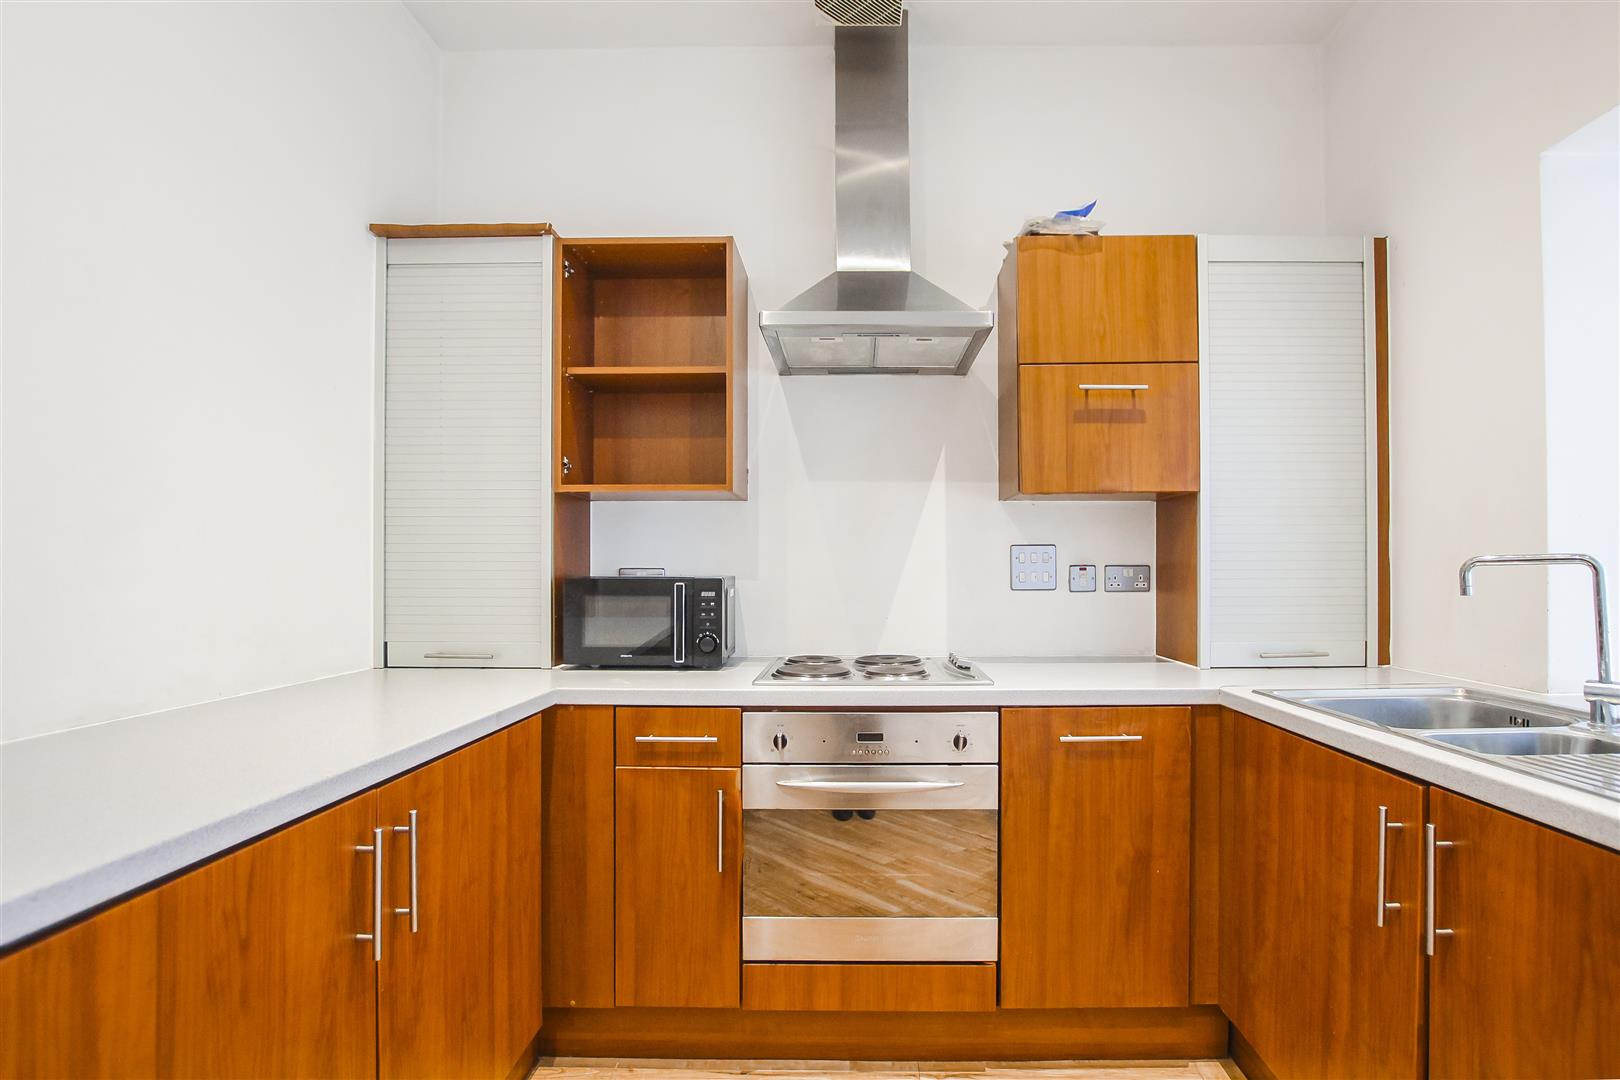 2 Bedroom Apartment For Sale - Kitchen